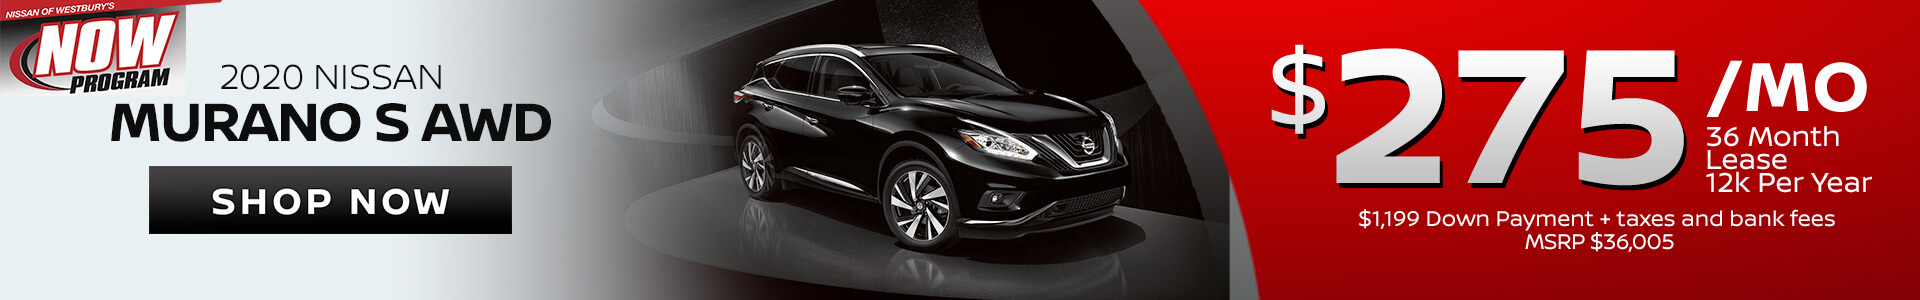 Nissan Murano $275 Lease